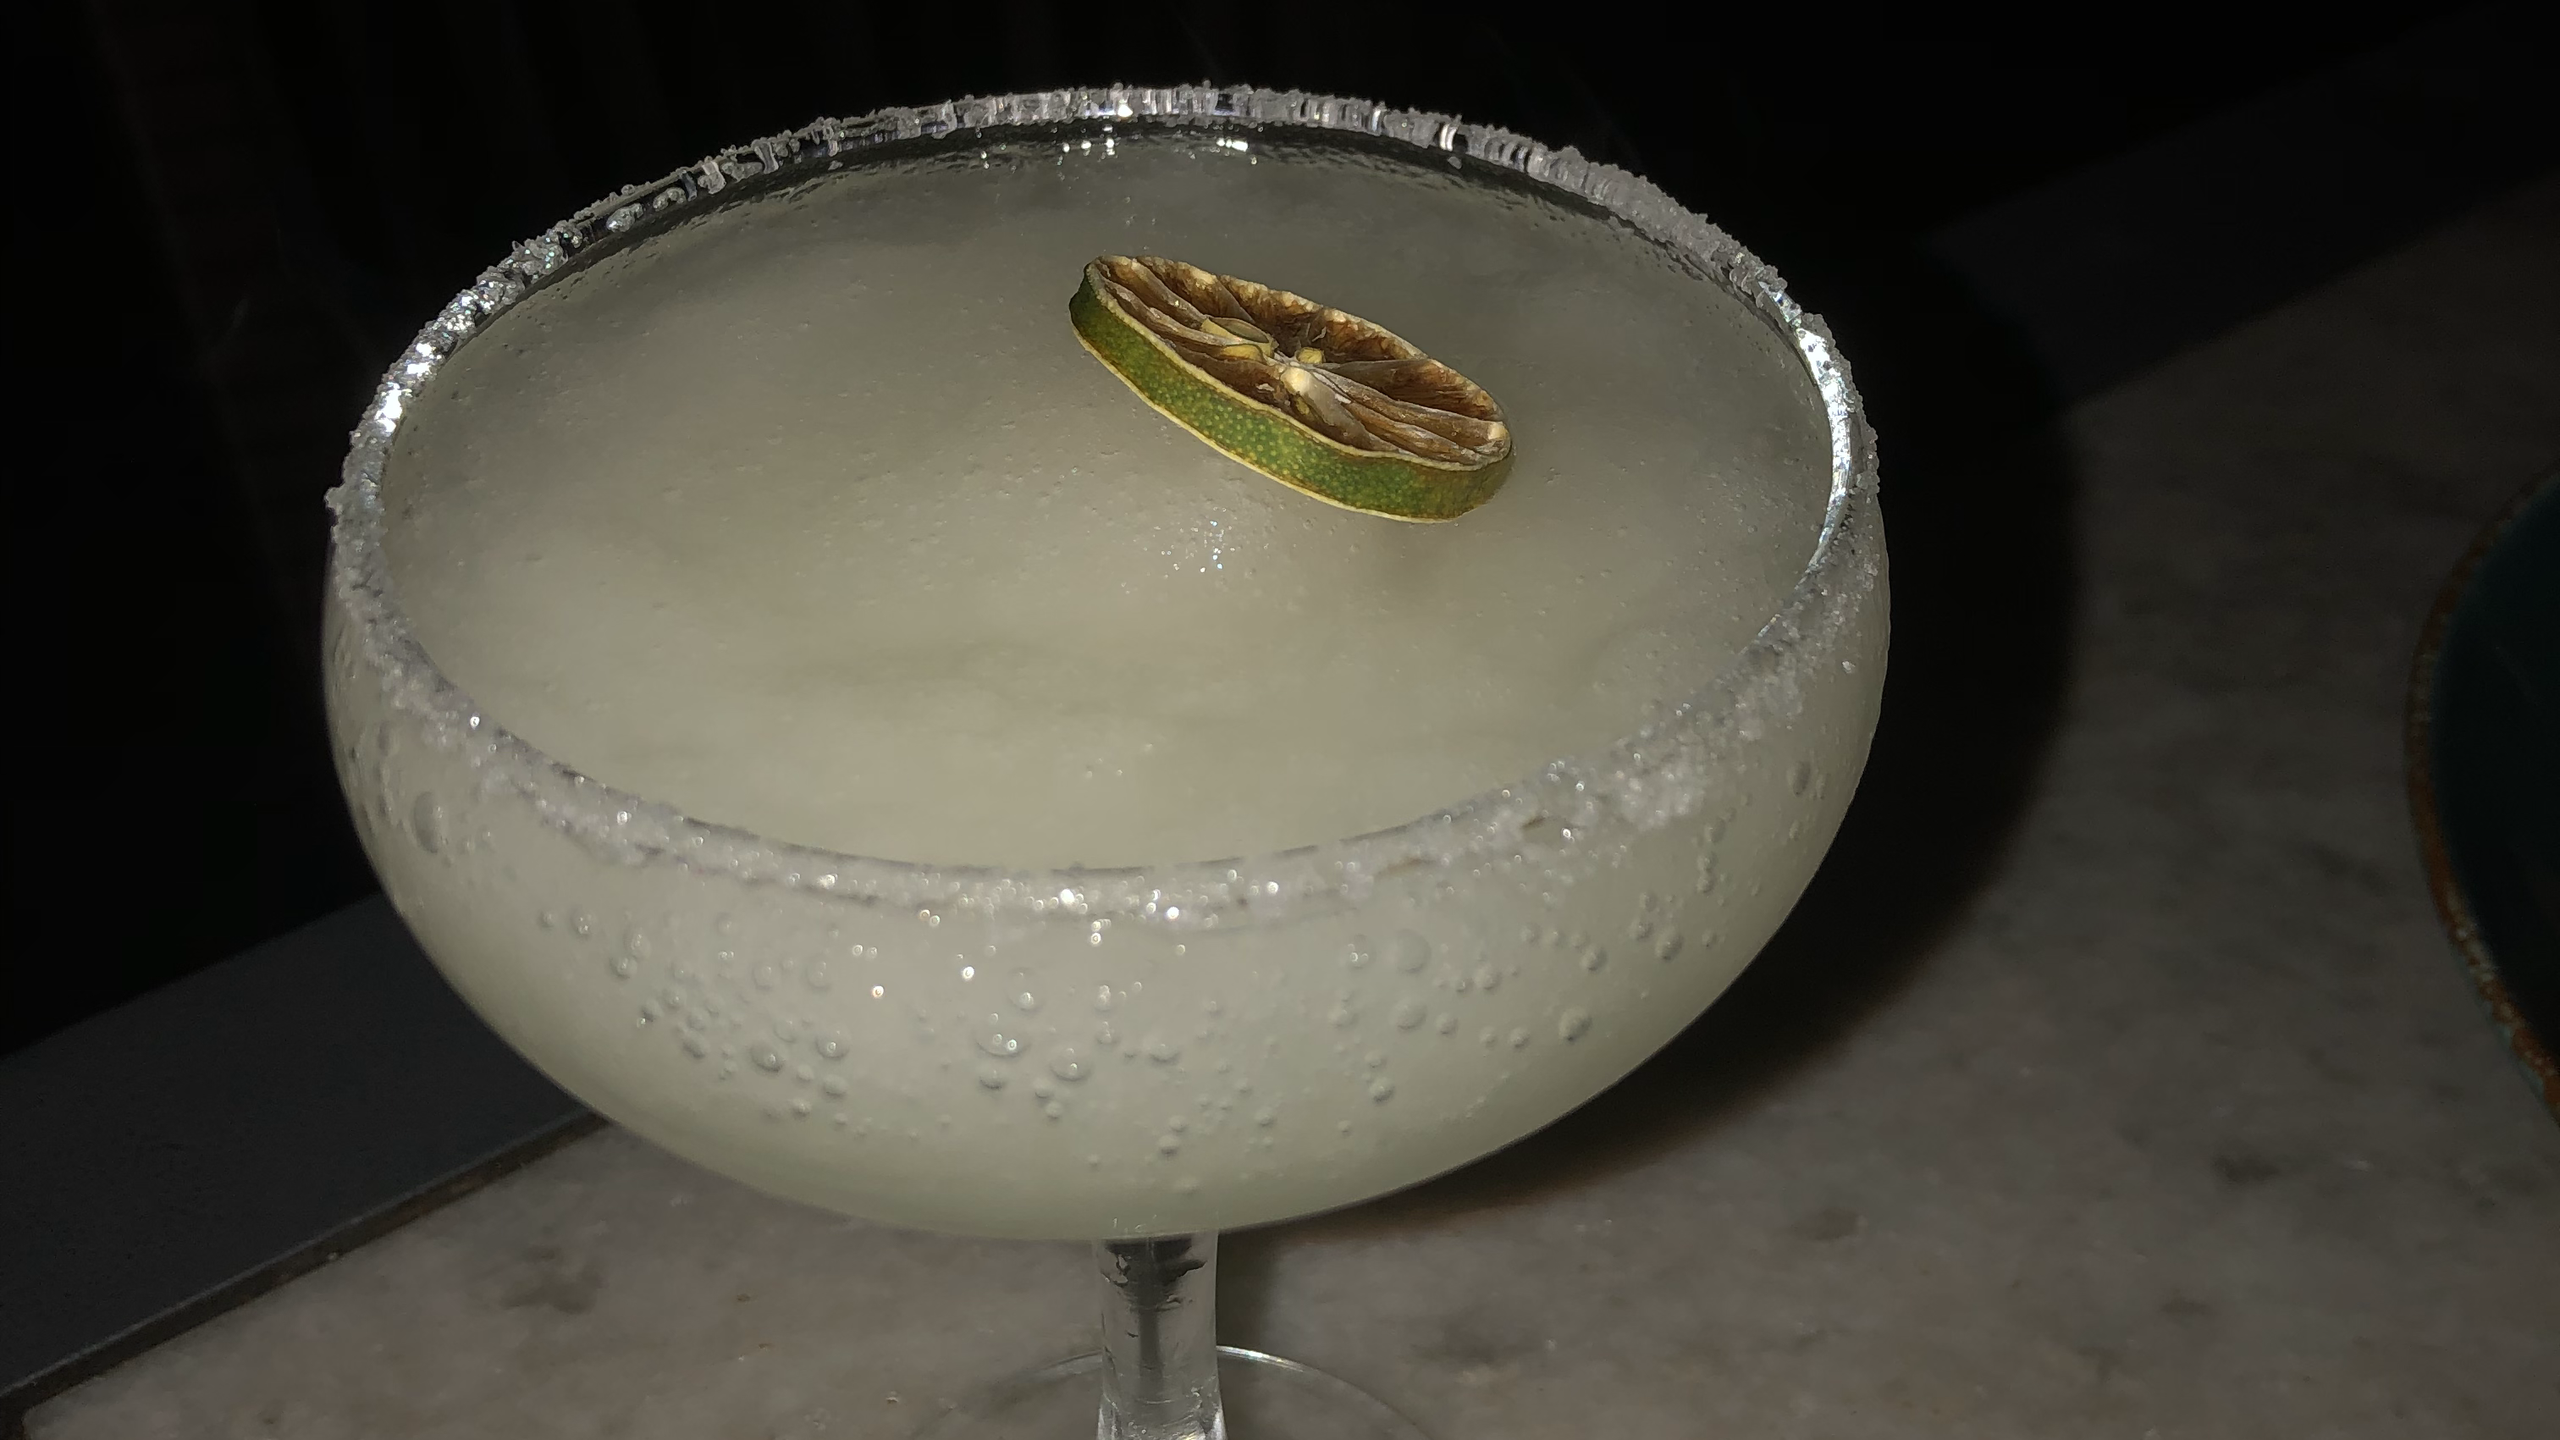 Frozen Margarita (Tequila based cocktail)